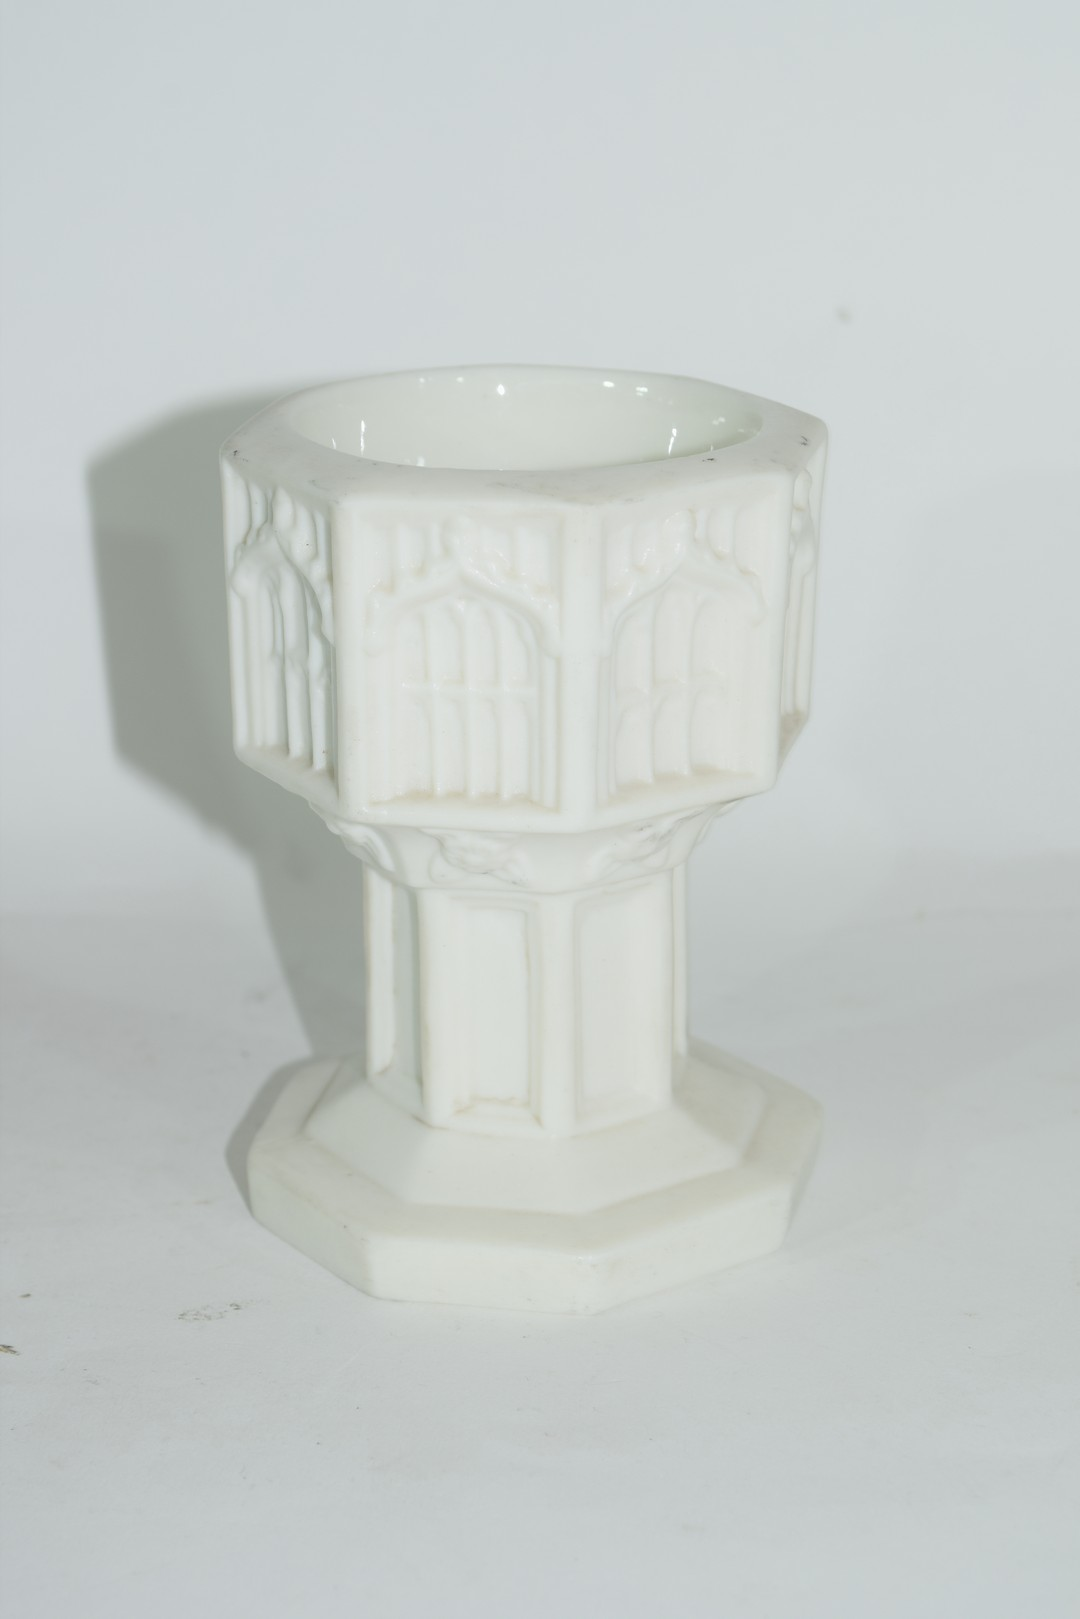 19th century Minton Parian ware model of a font